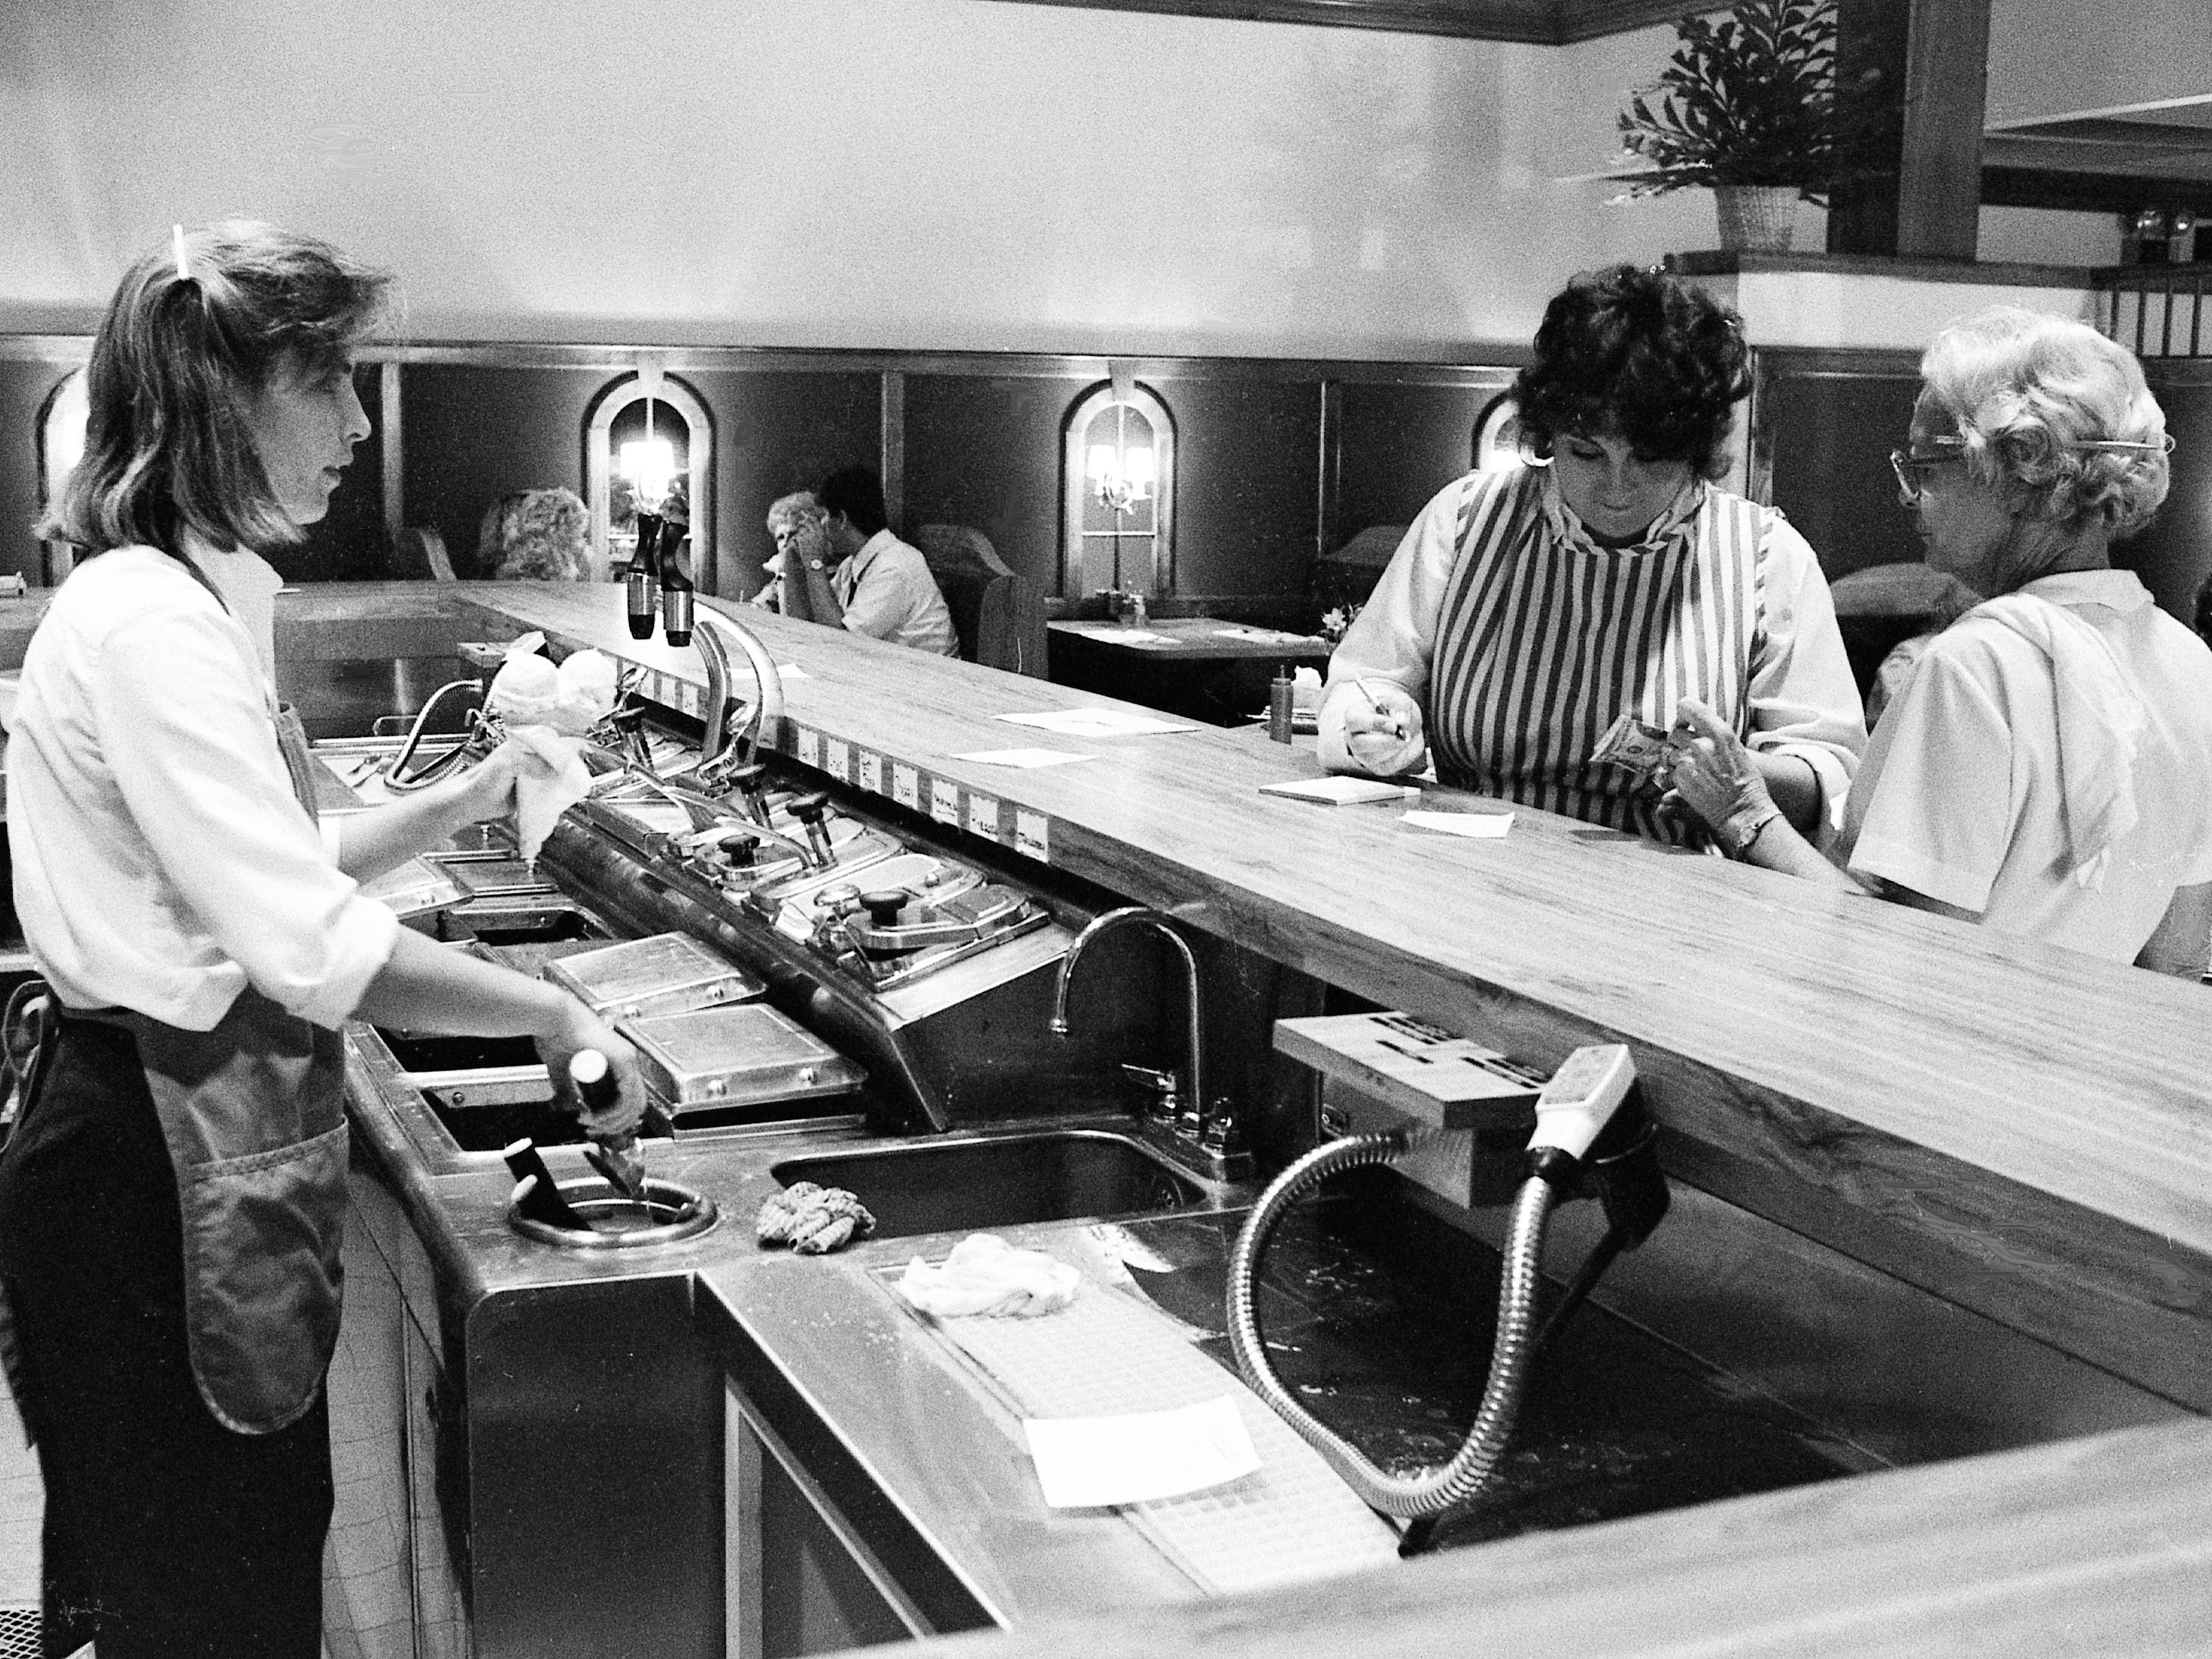 Courtney Dodge, left, is making desserts at the new Candyland Restaurant Sept. 4, 1985. The eatery in the Westgate Shopping Center is the first major expansion of the 65-year-old downtown Candyland.